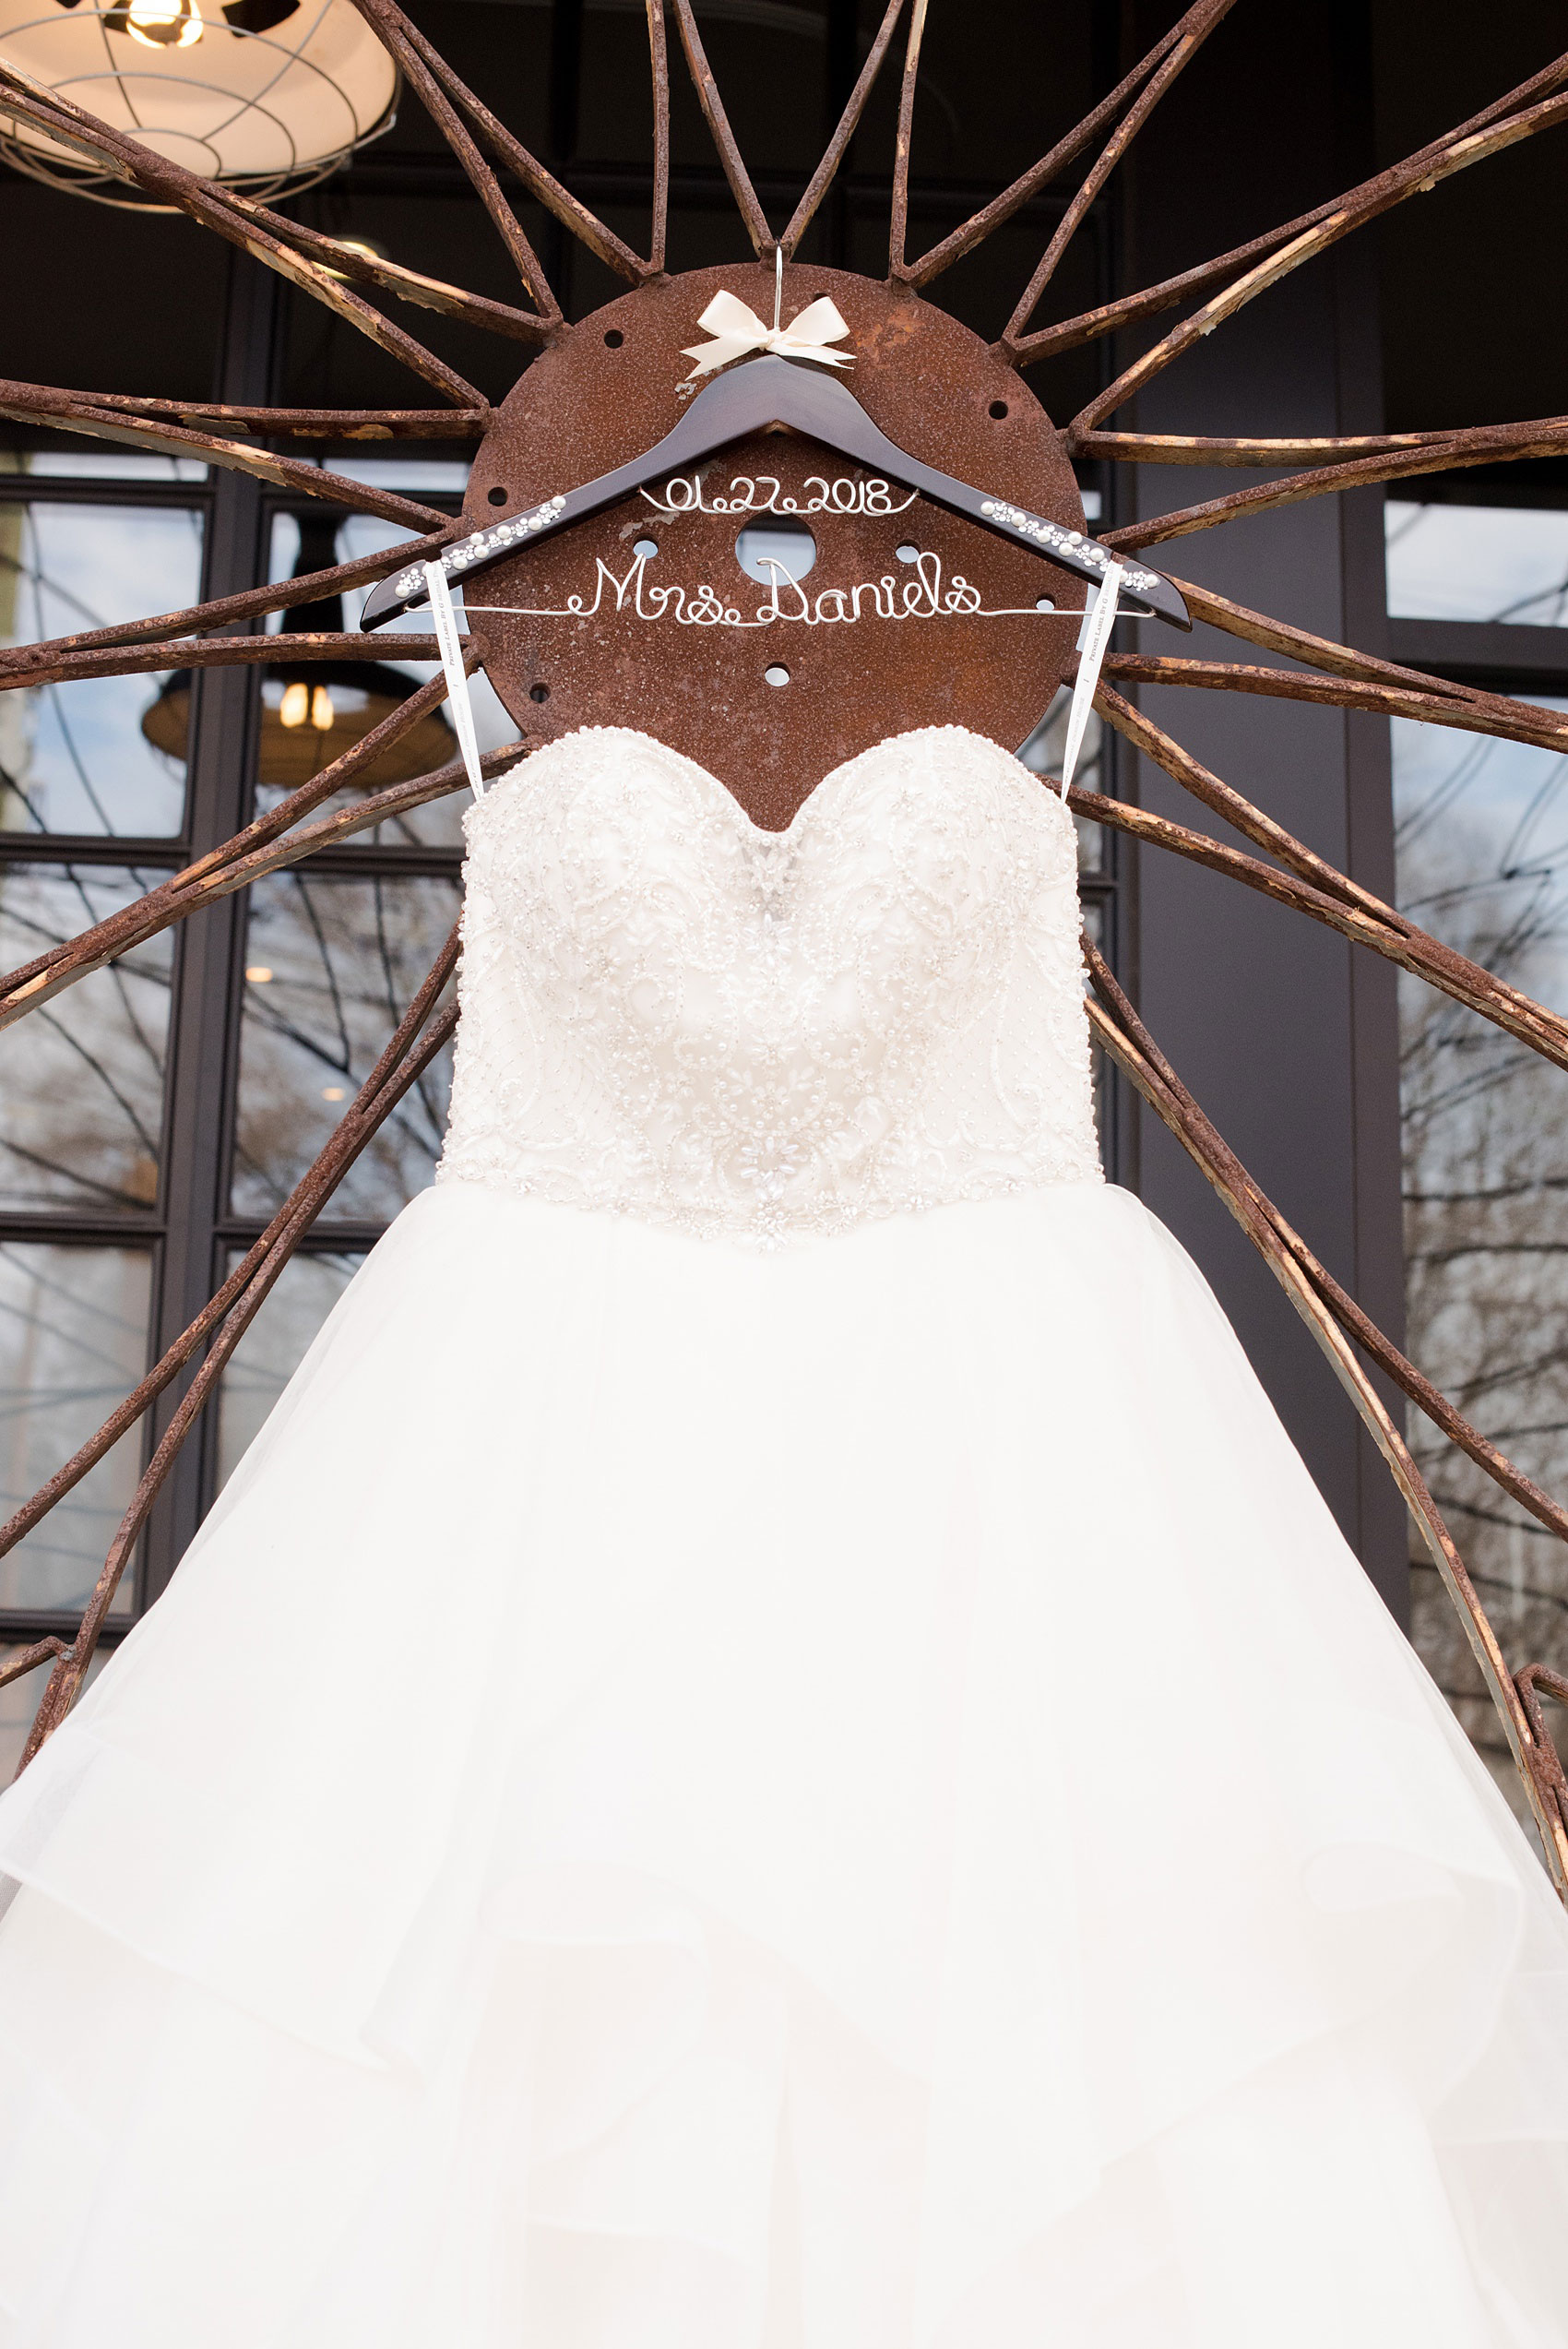 Durham wedding photos at The Cookery by Mikkel Paige Photography in North Carolina. The bride wore a strapless beaded gown, shown in a detailed picture on a rustic front gate at the venue, on a special pearl and rhinestone hanger.